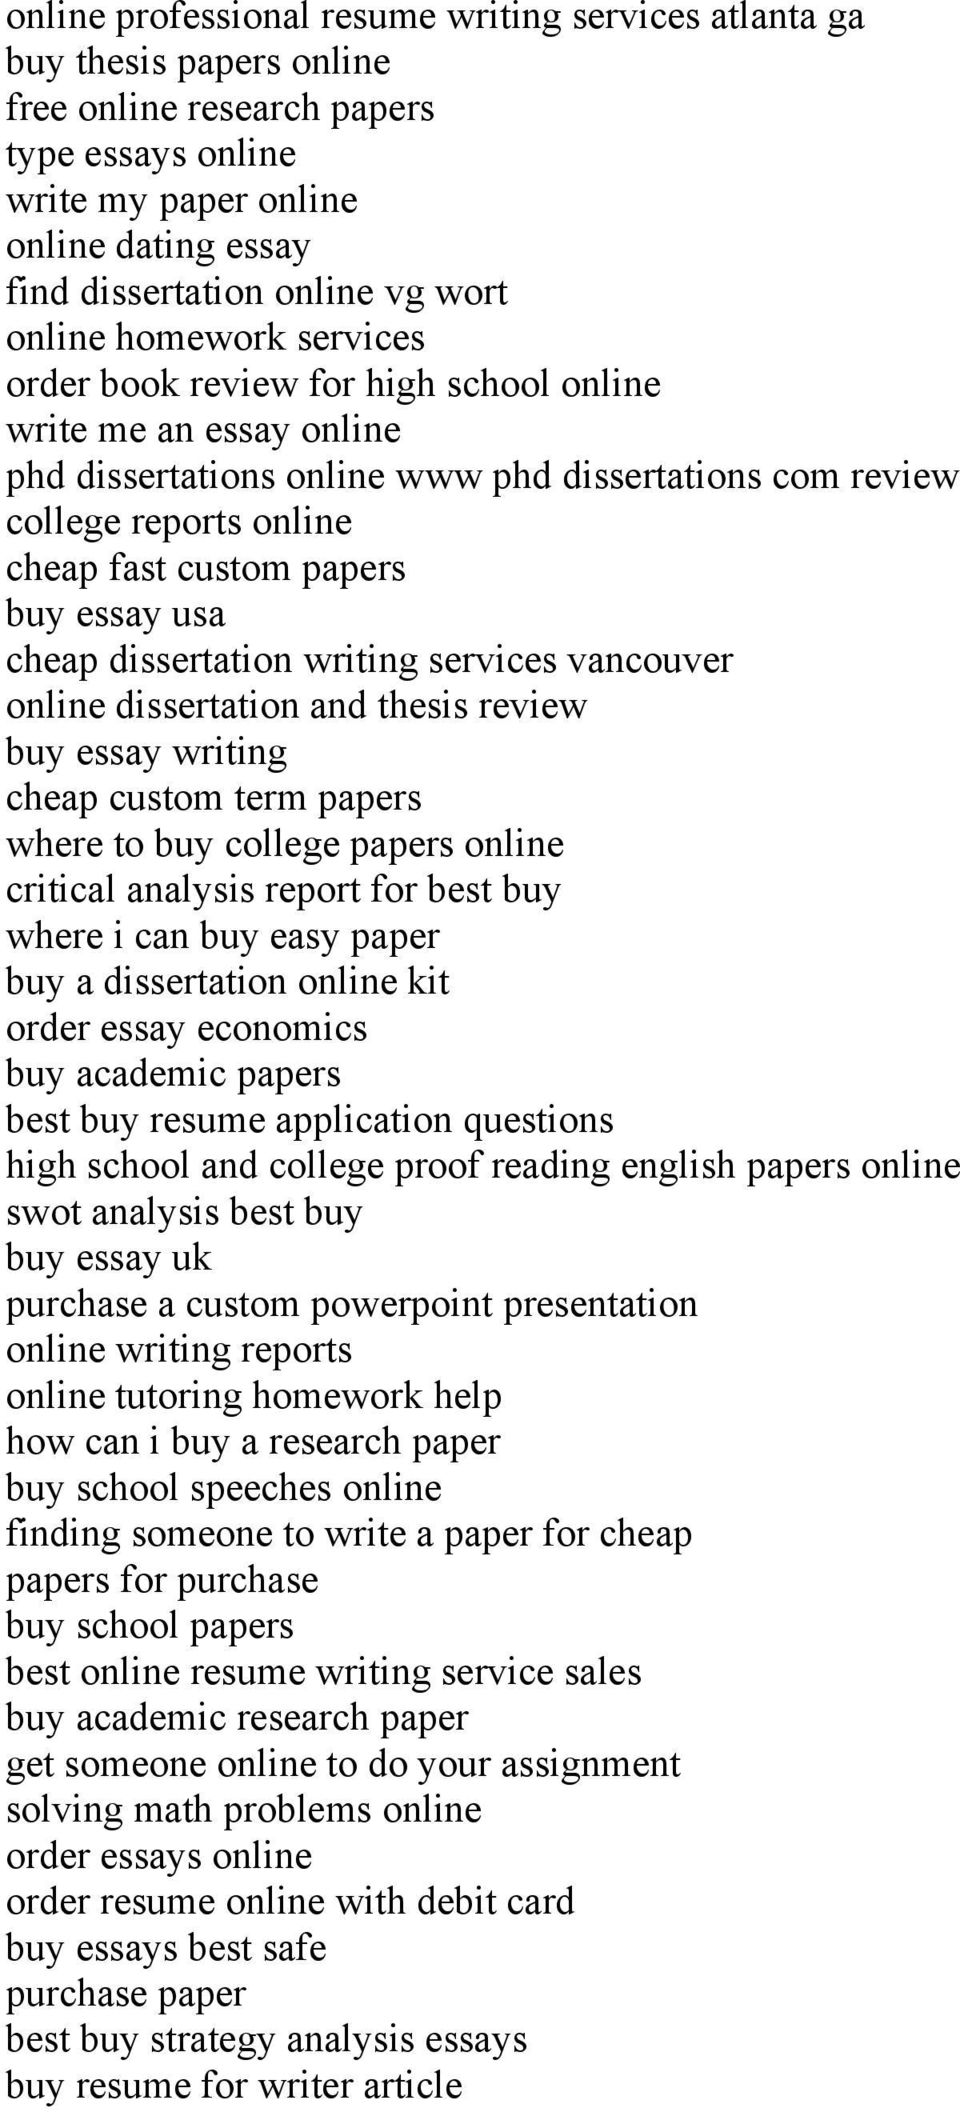 papers buy essay usa cheap dissertation writing services vancouver online dissertation and thesis review buy essay writing cheap custom term papers where to buy college papers online critical